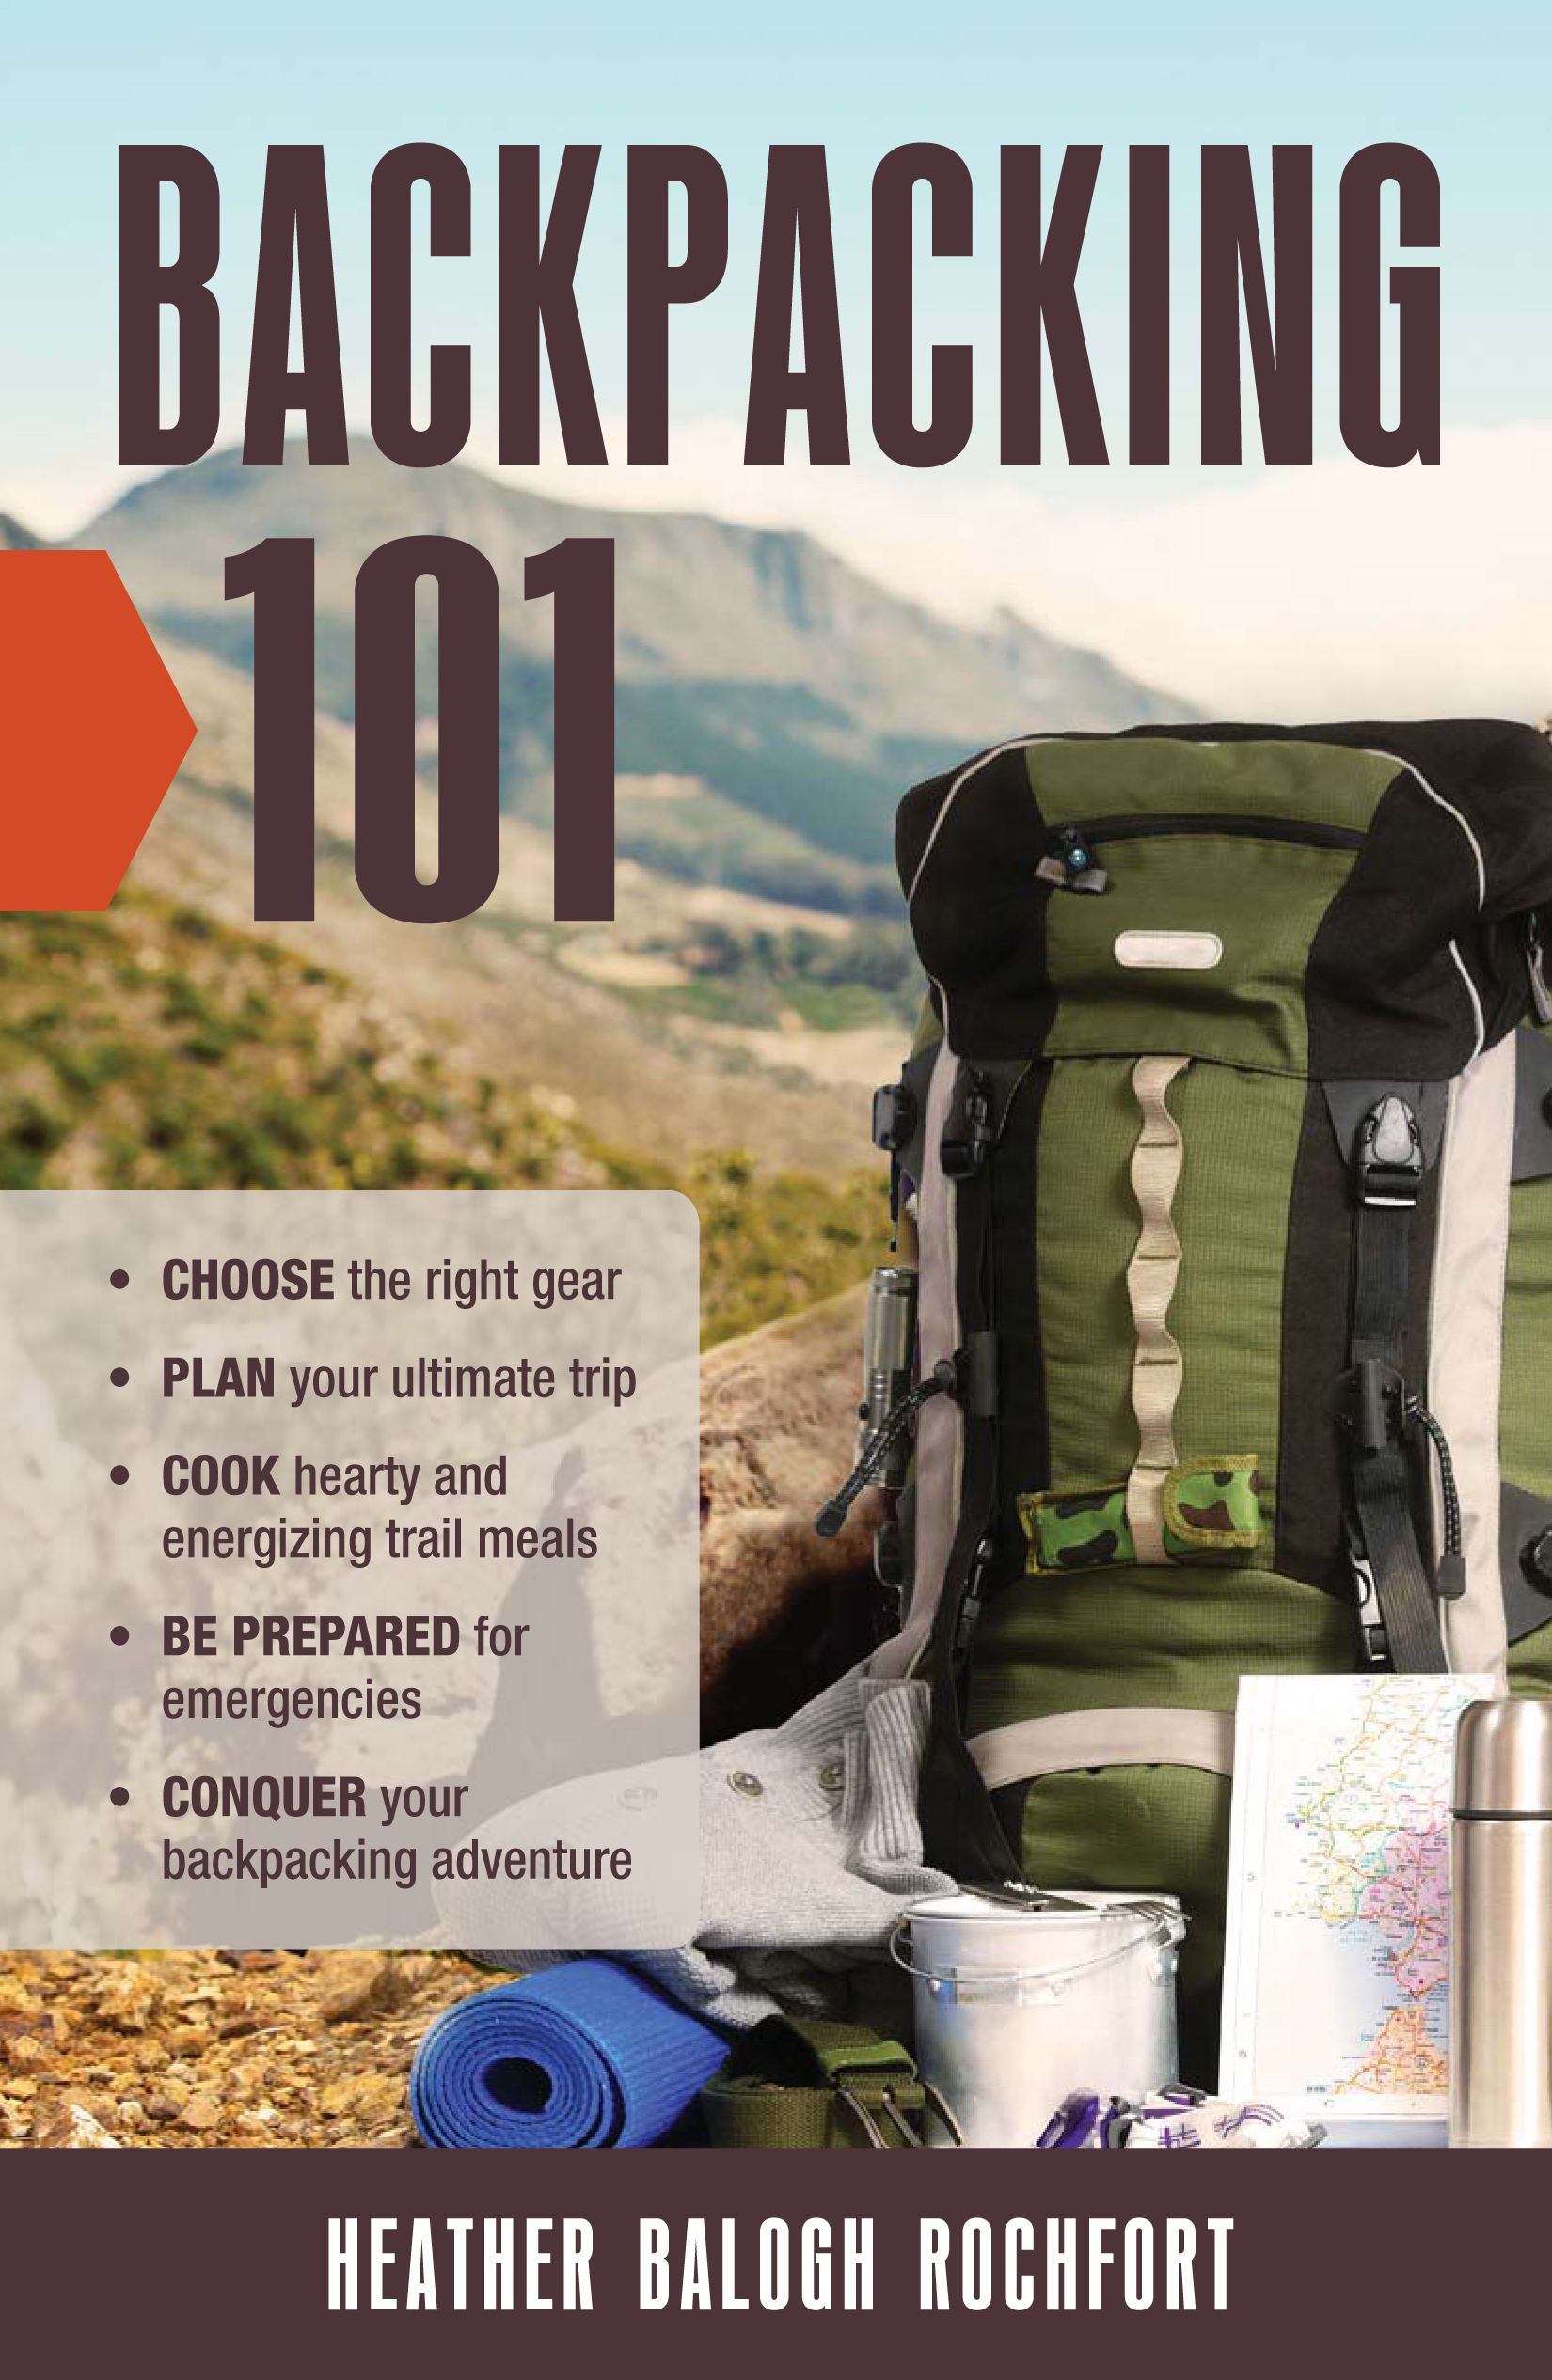 Book Review and Interview: Backpacking 101 by Heather Balogh Rochfort